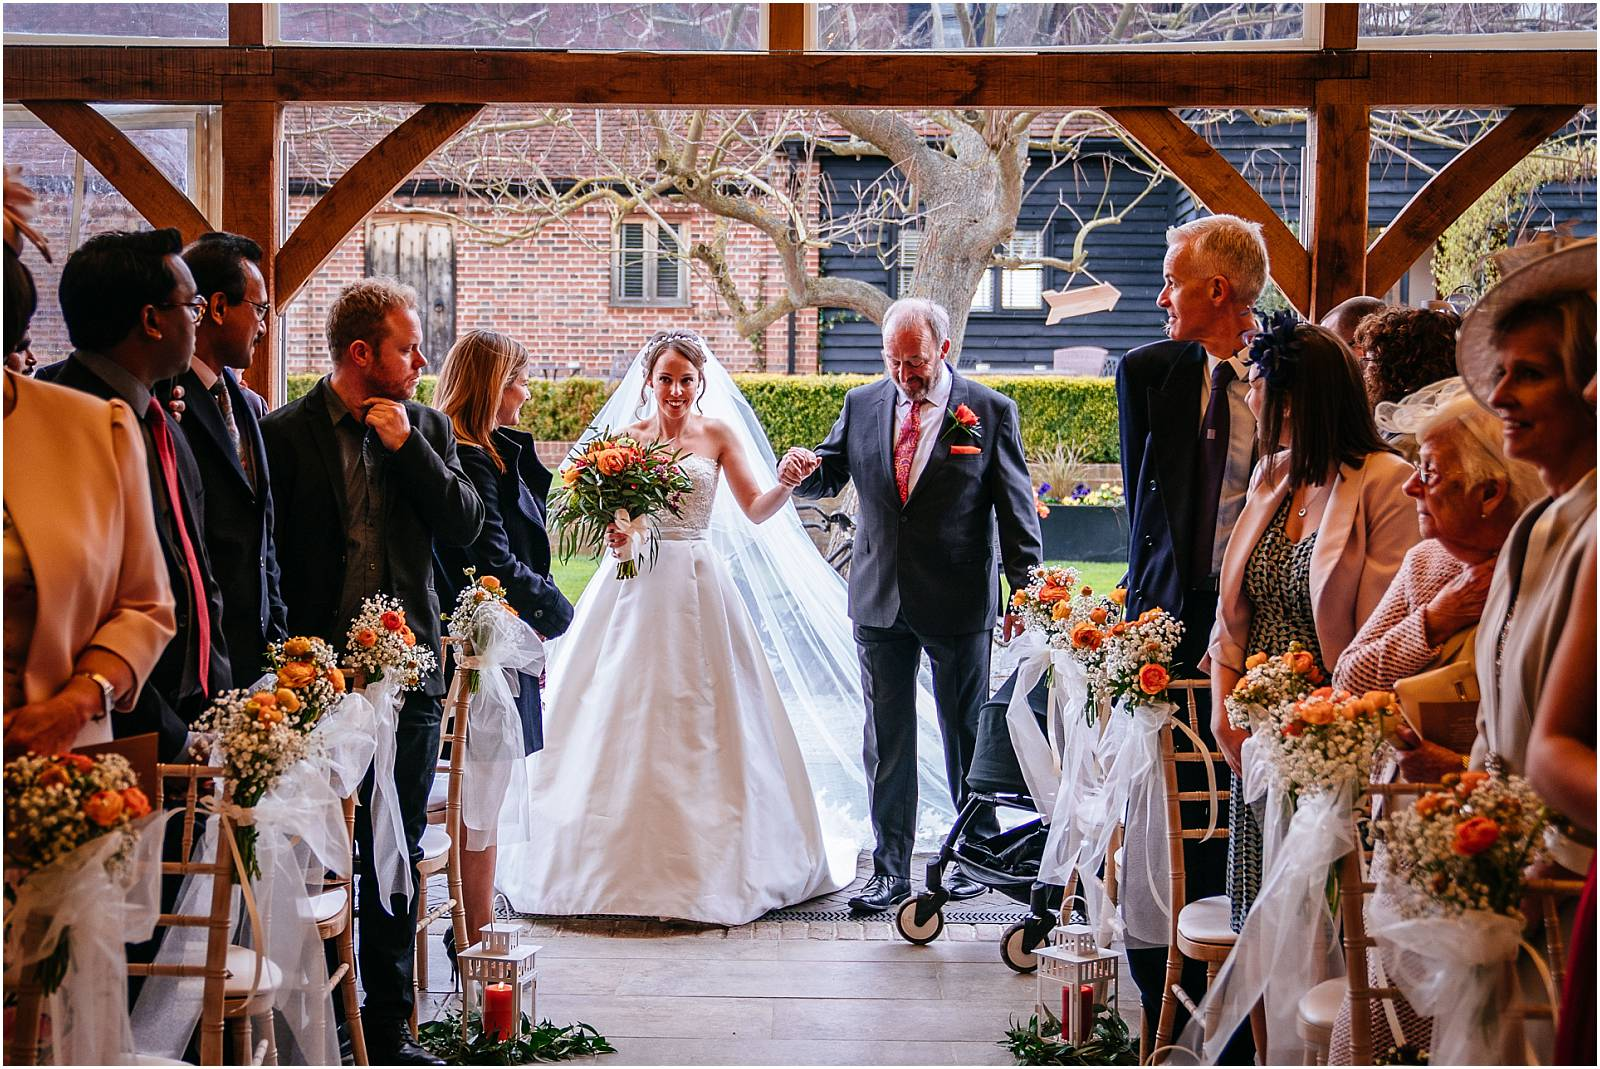 walking down the aisle at coltsfoot